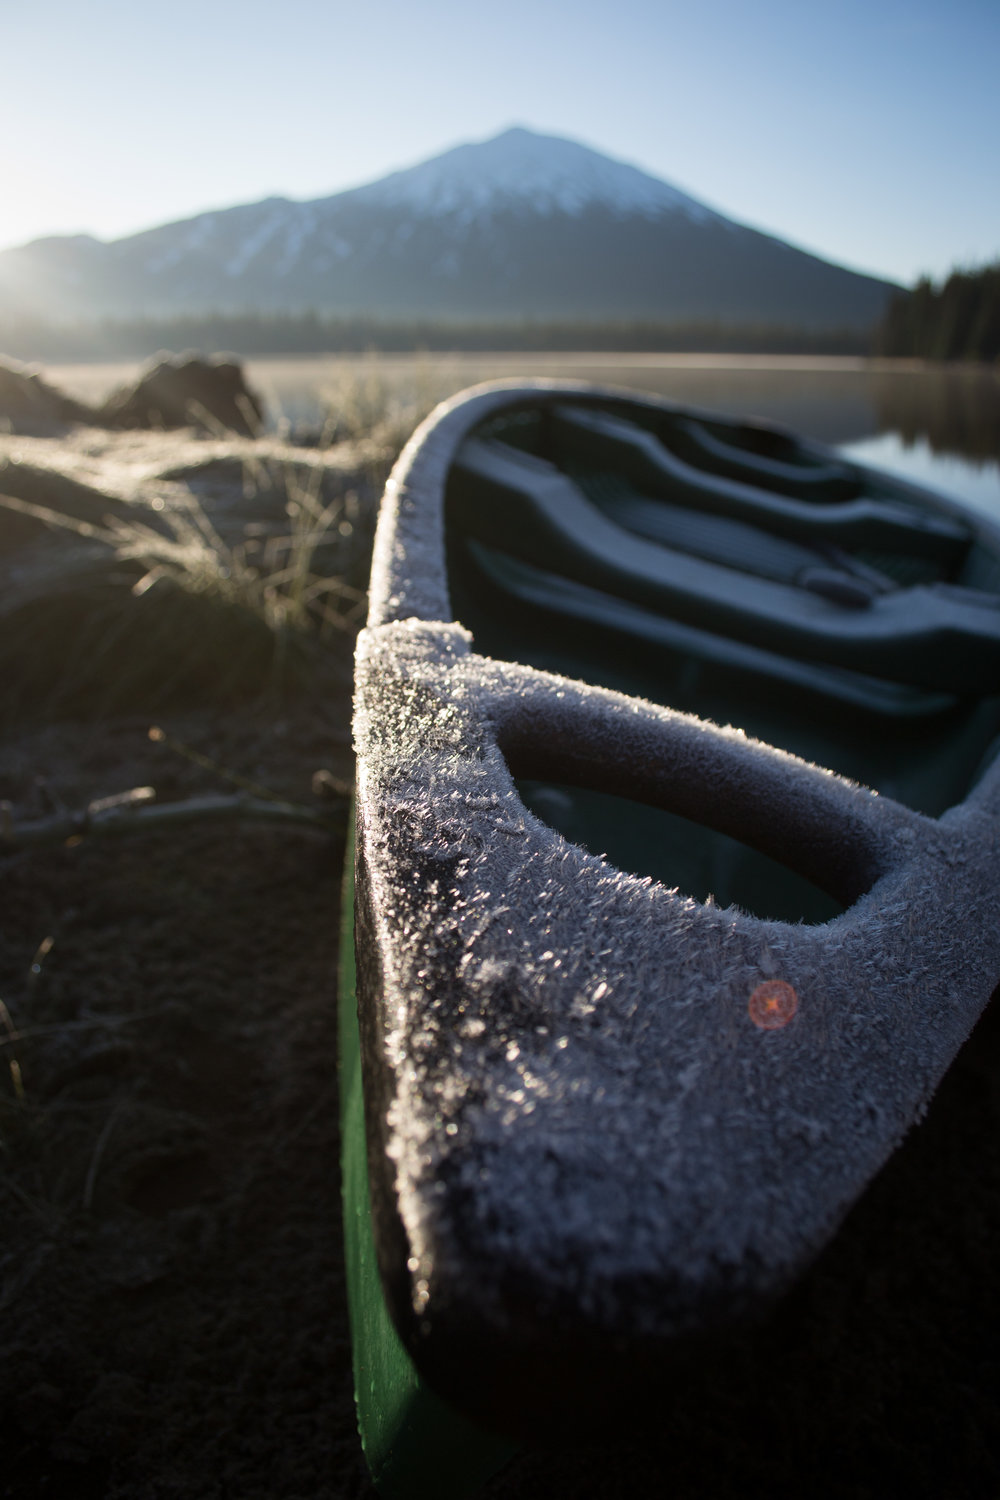 Reason #1 to bring a Hydro Flask of hot cocoa on the tour... Sometimes those early morning paddles in the fall are cold!